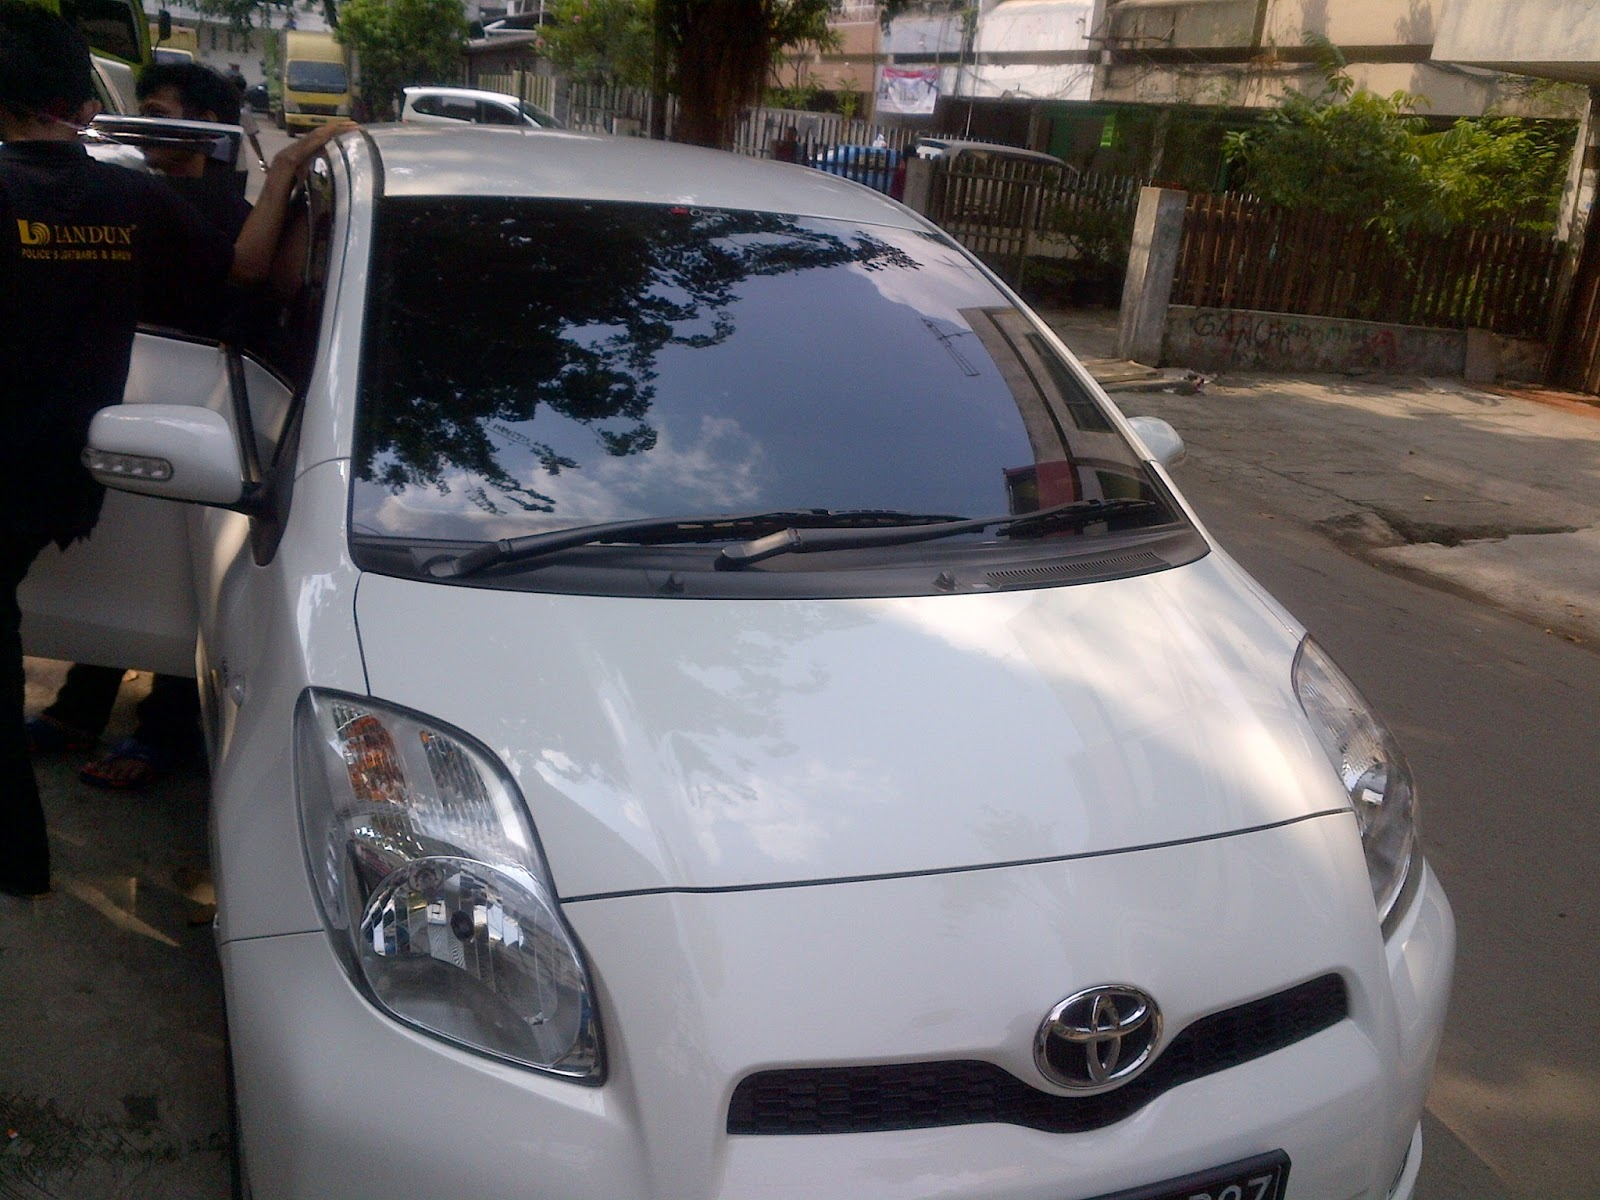 TOYOTA YARIS WITH CRYSTALLINE 40-3.bp.blogspot.com